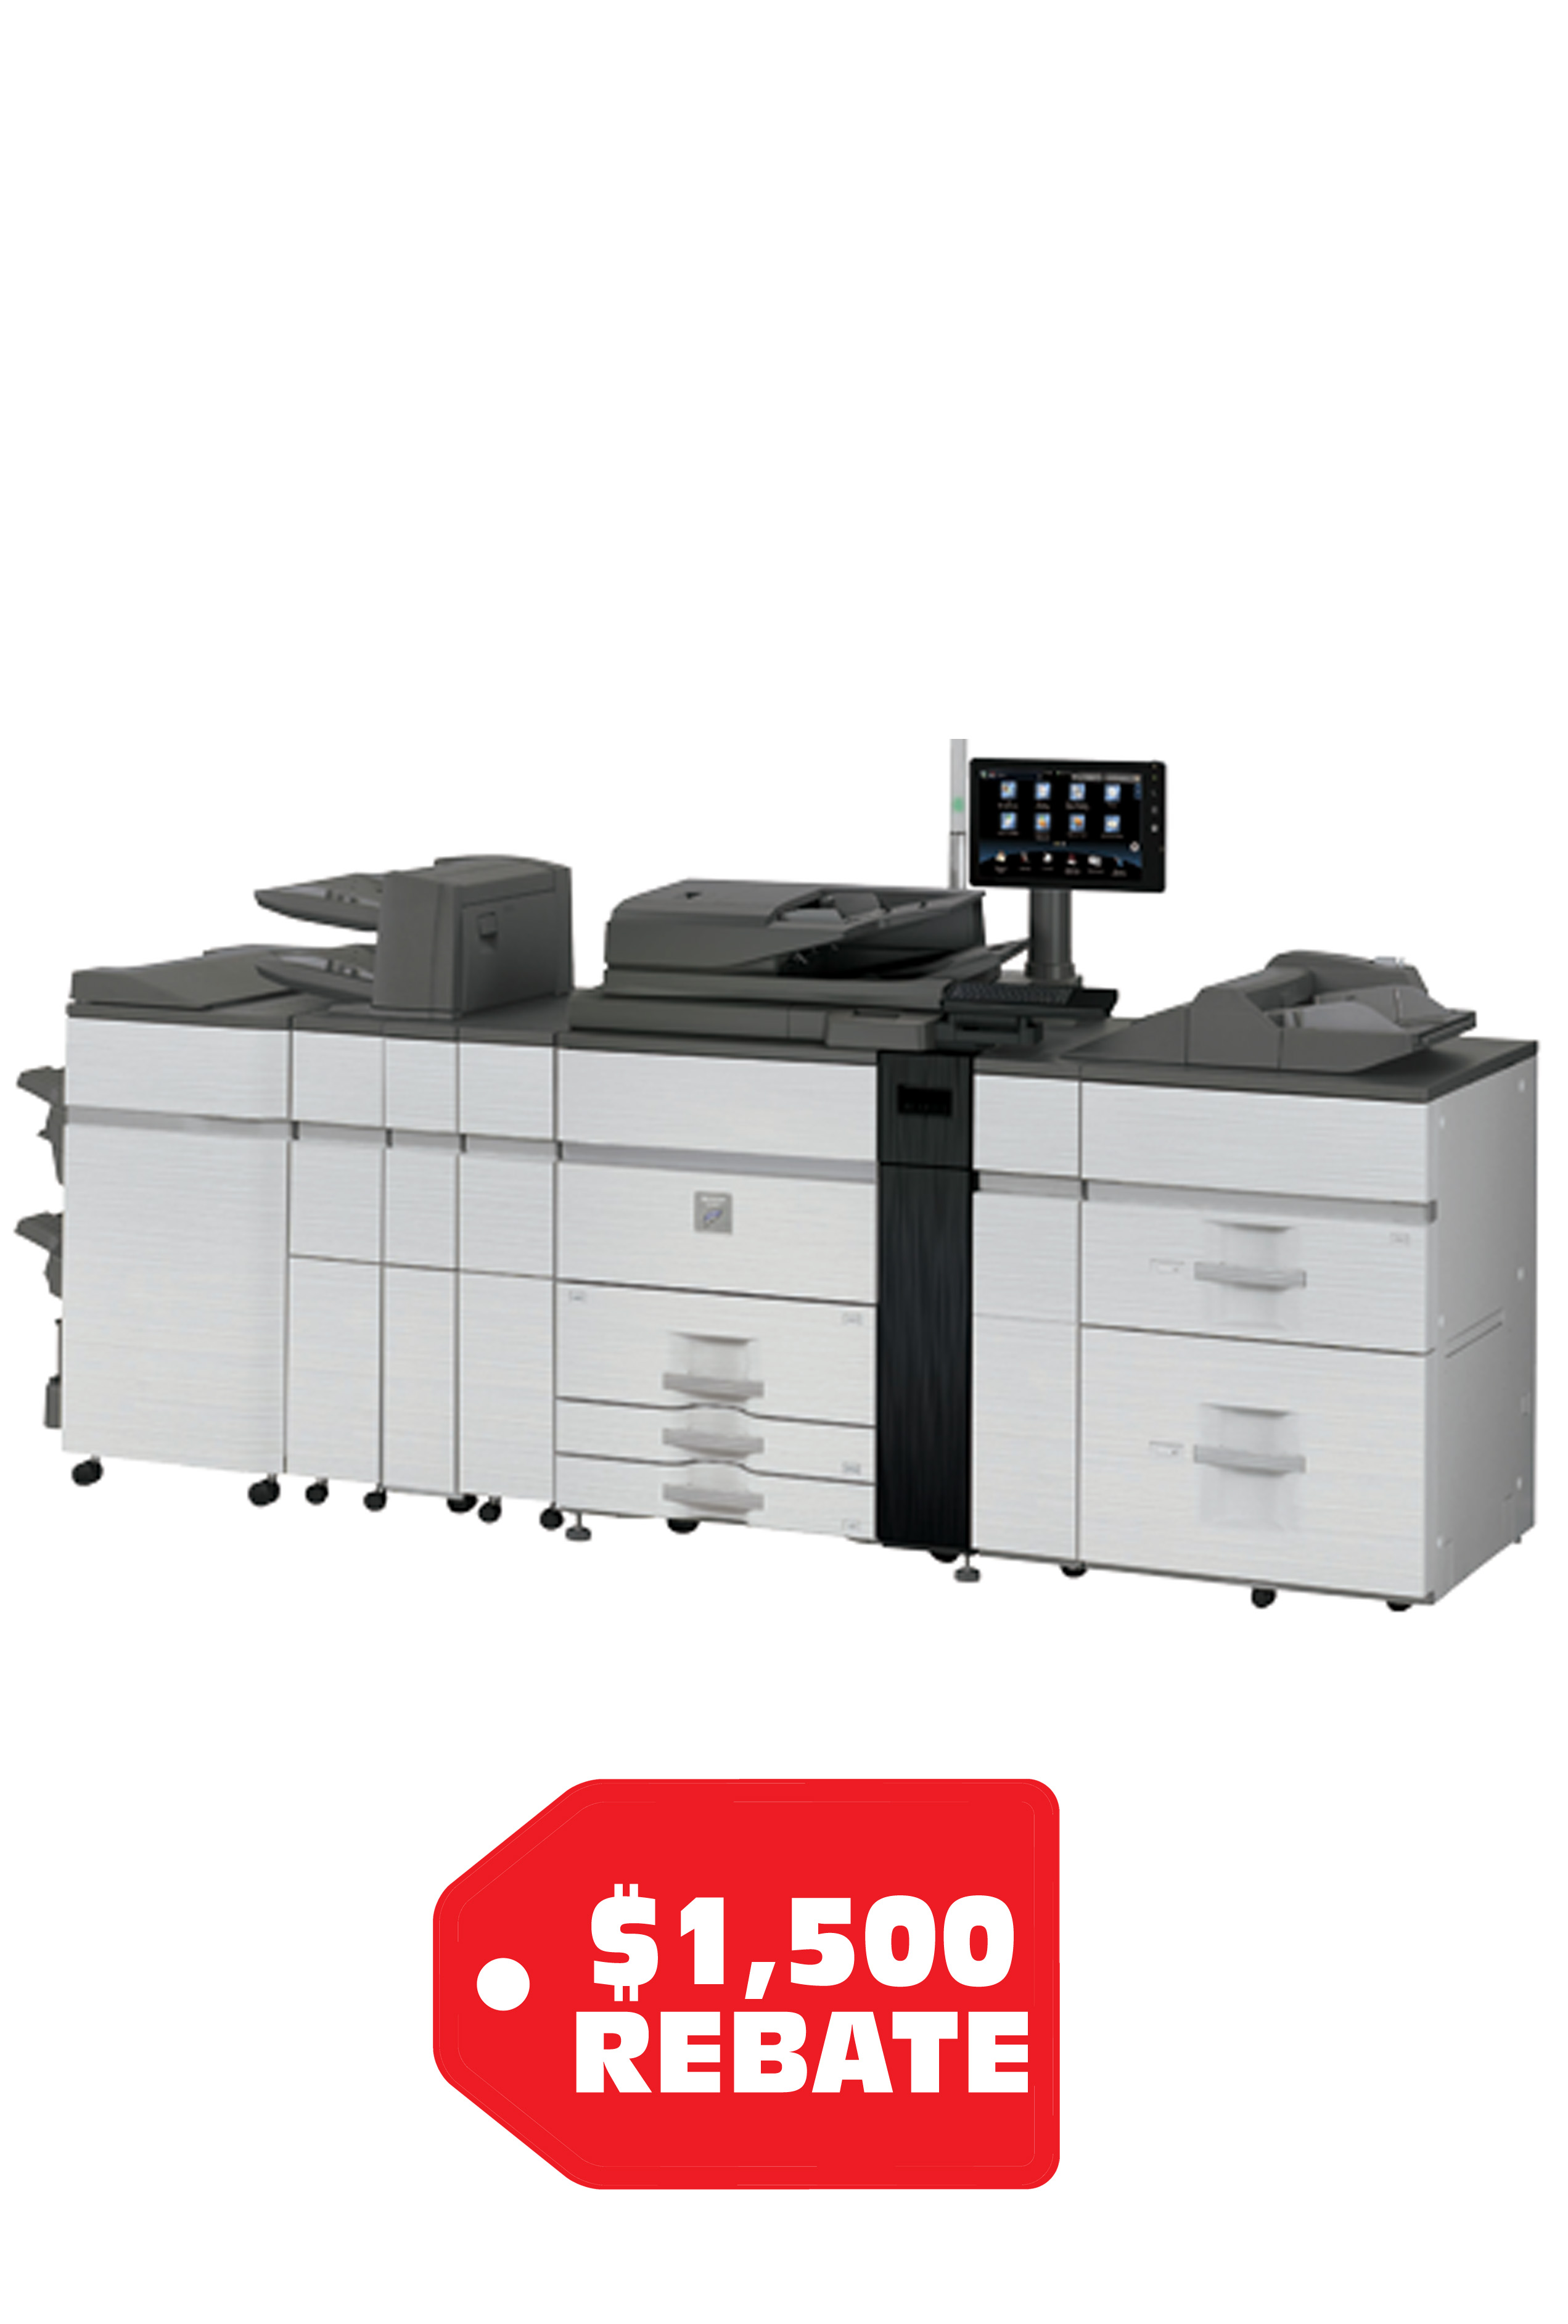 Sharp MX-M1205 Monochrome Document System (120ppm)